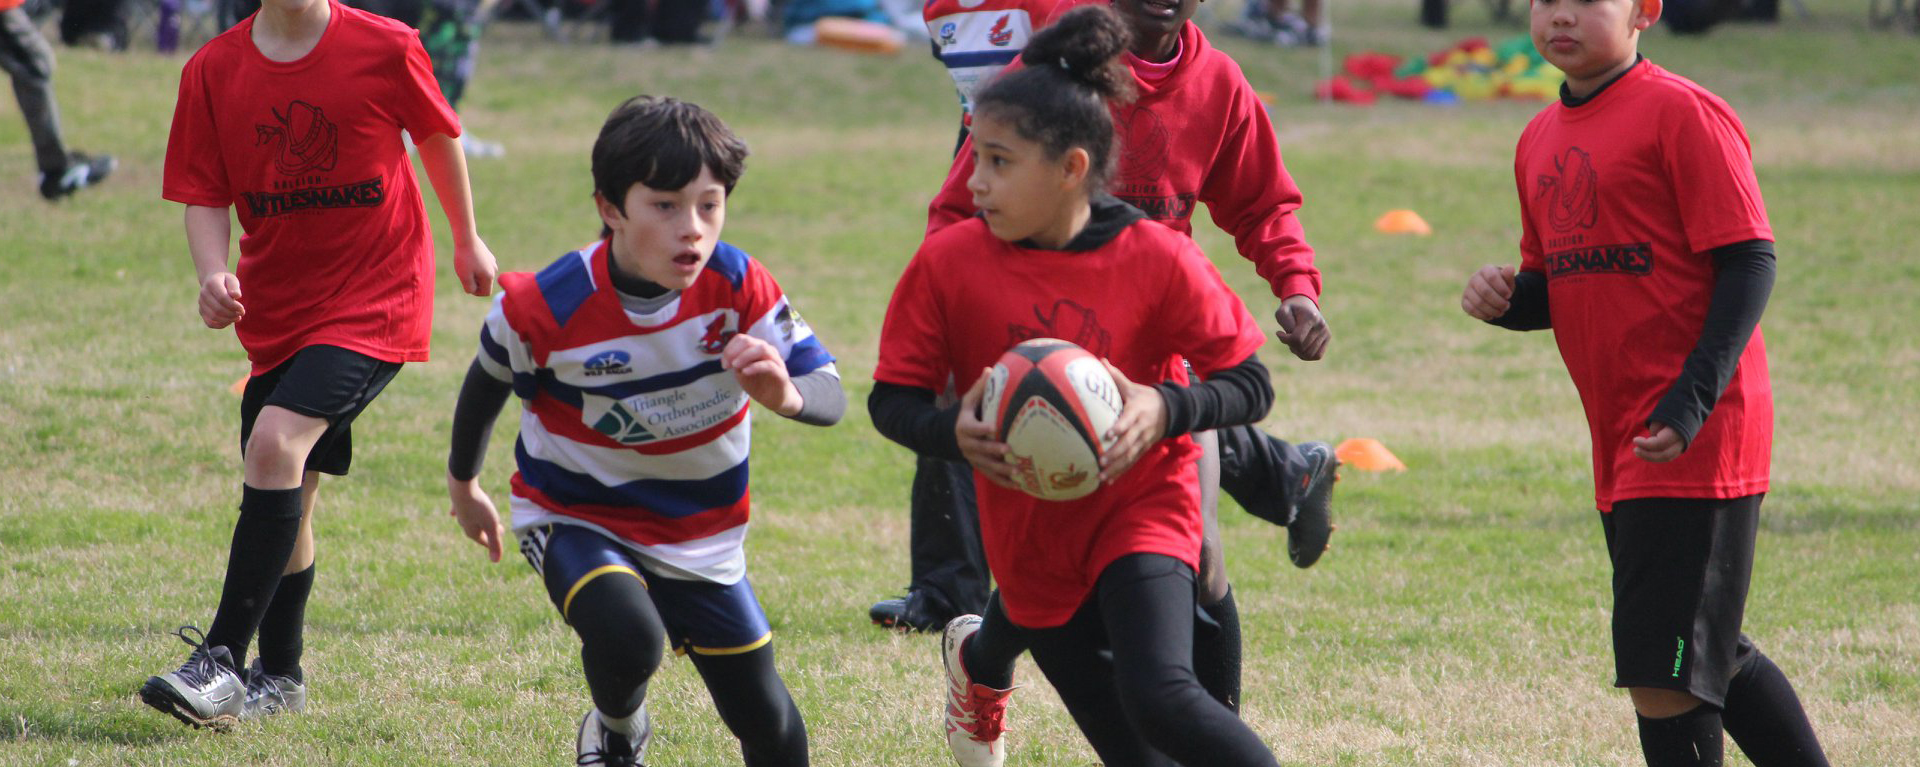 Raleigh Youth Rugby